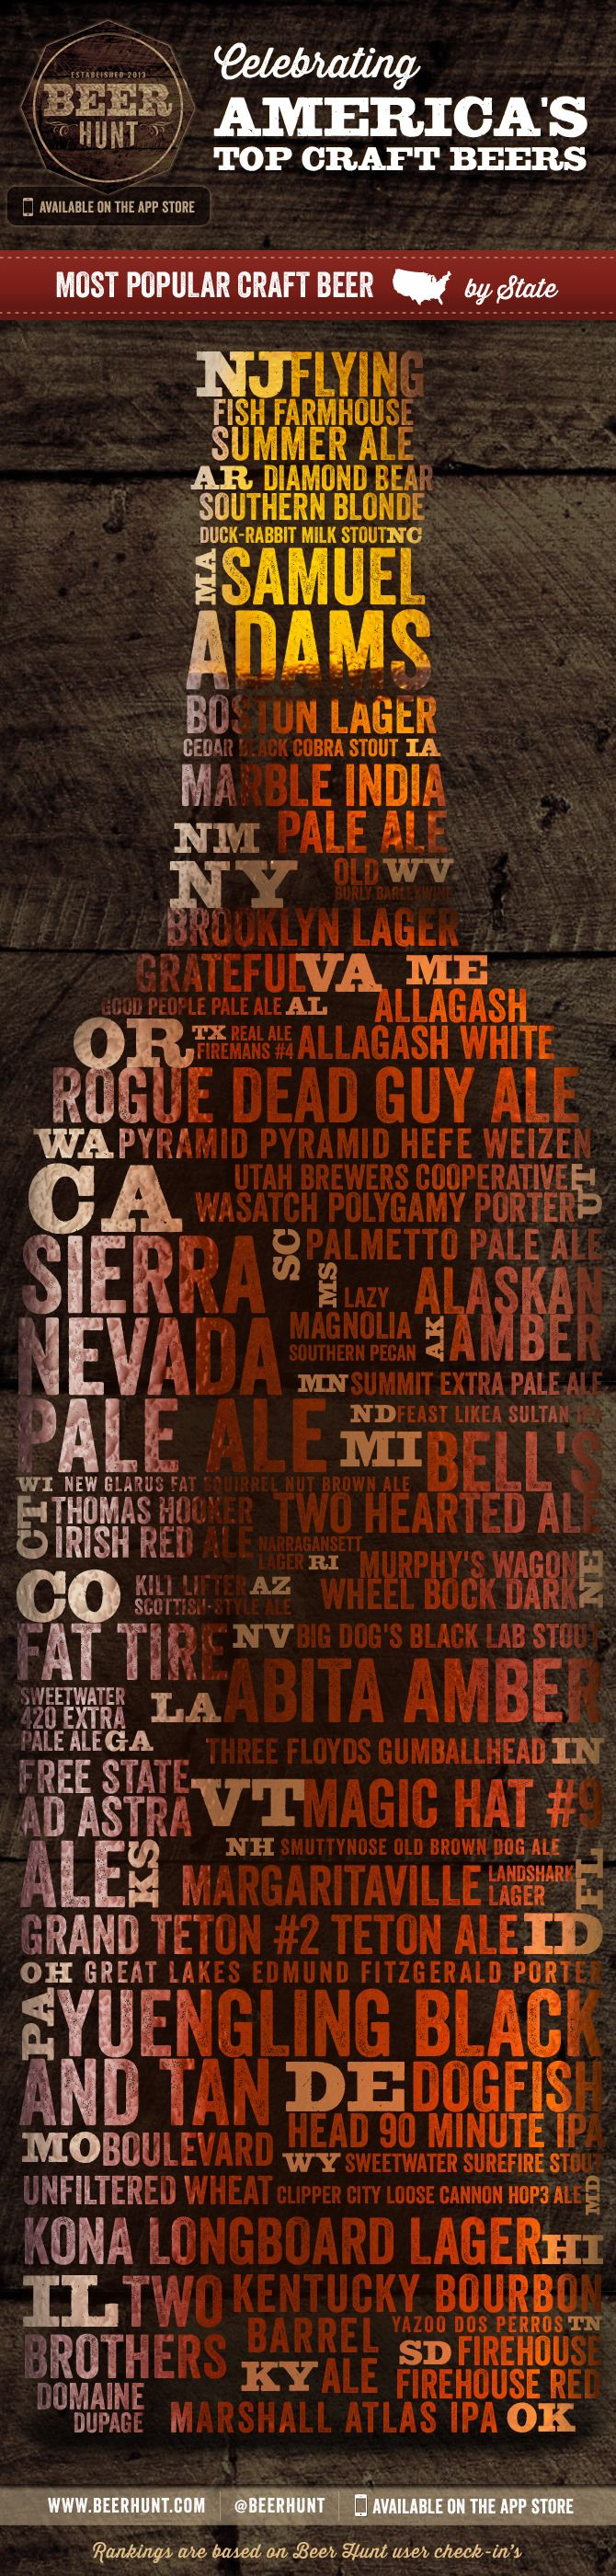 Another craft beer infographic, and I hope you're as excited as me! After looking over the graphic today, I couldn't help but notice a ton of familiar brews ranging from Arkansas to Alaska. Now I'll just have to enlighten you on my favorite beers per